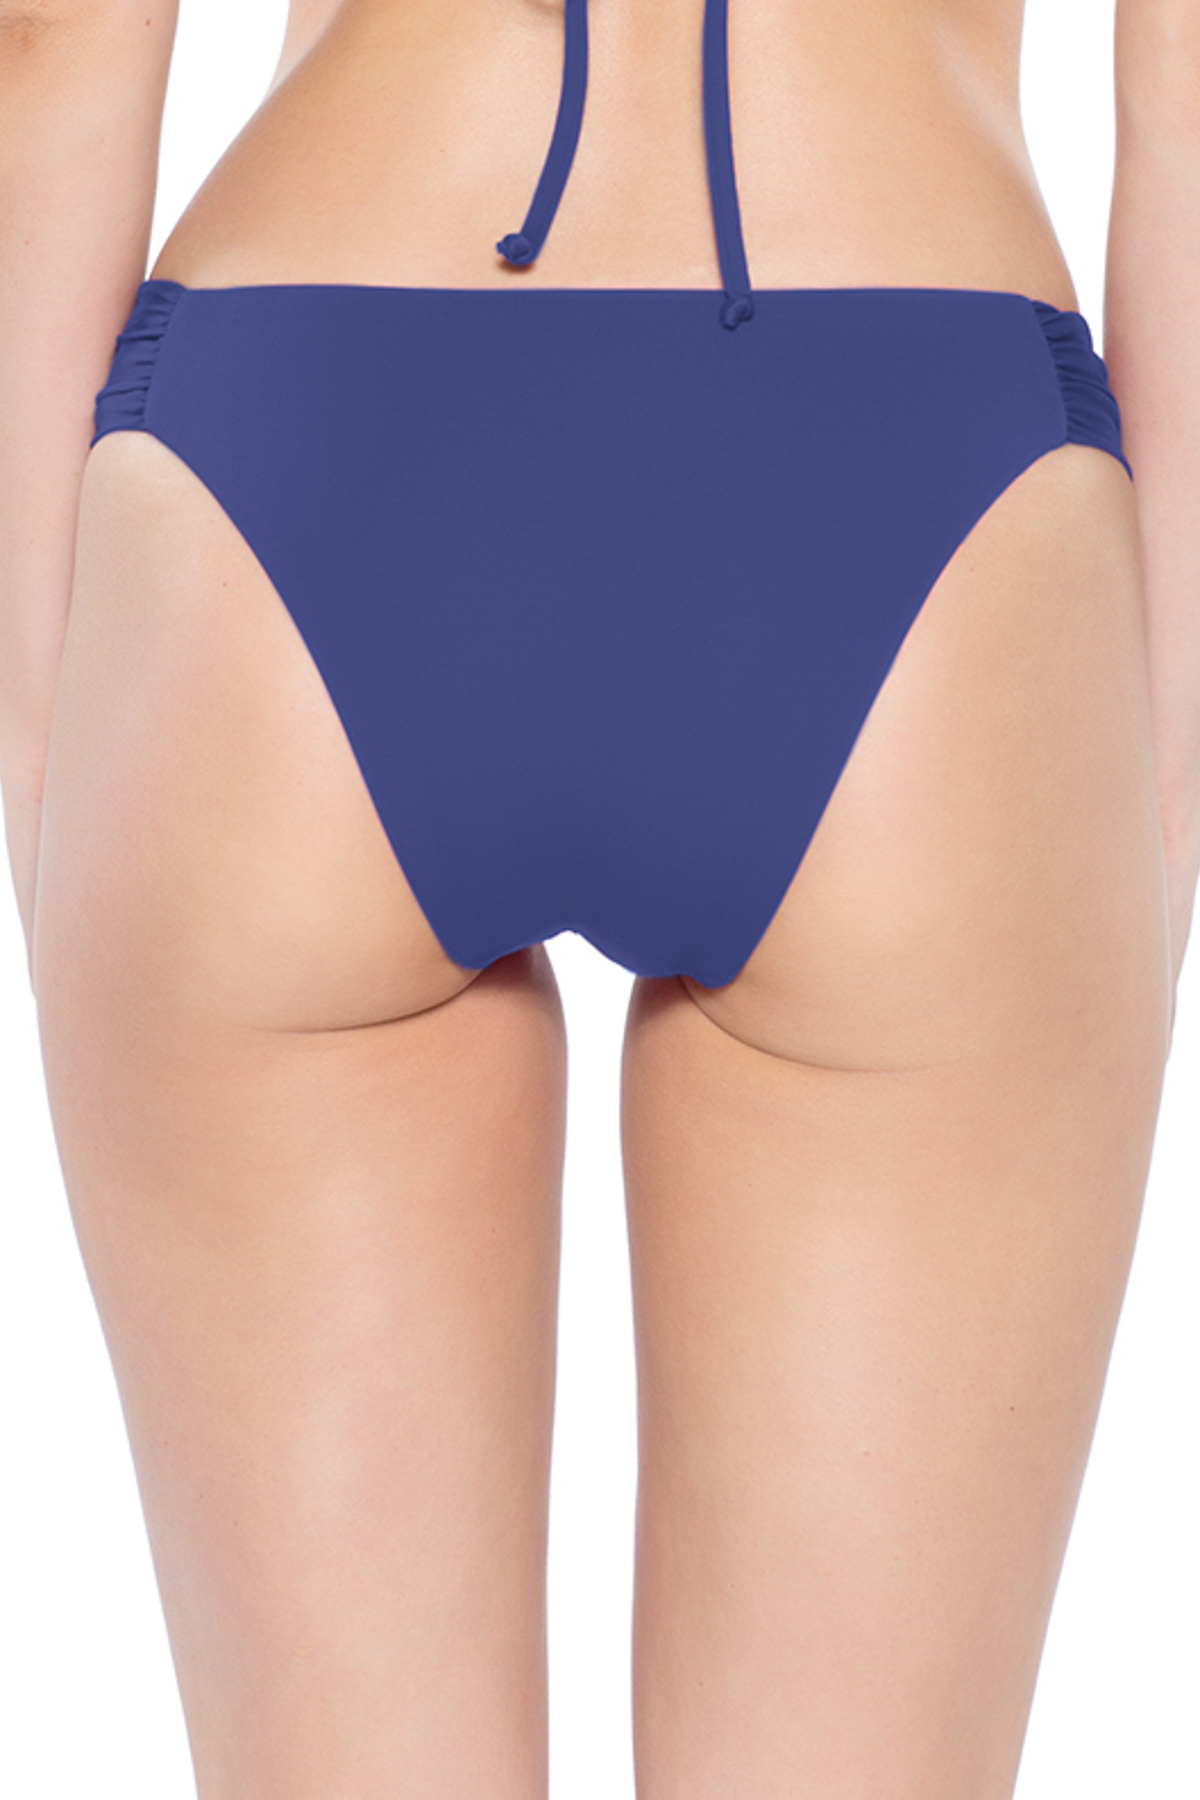 Coastal Tab Side Brazilian Bikini Bottom - Blue Topaz 4